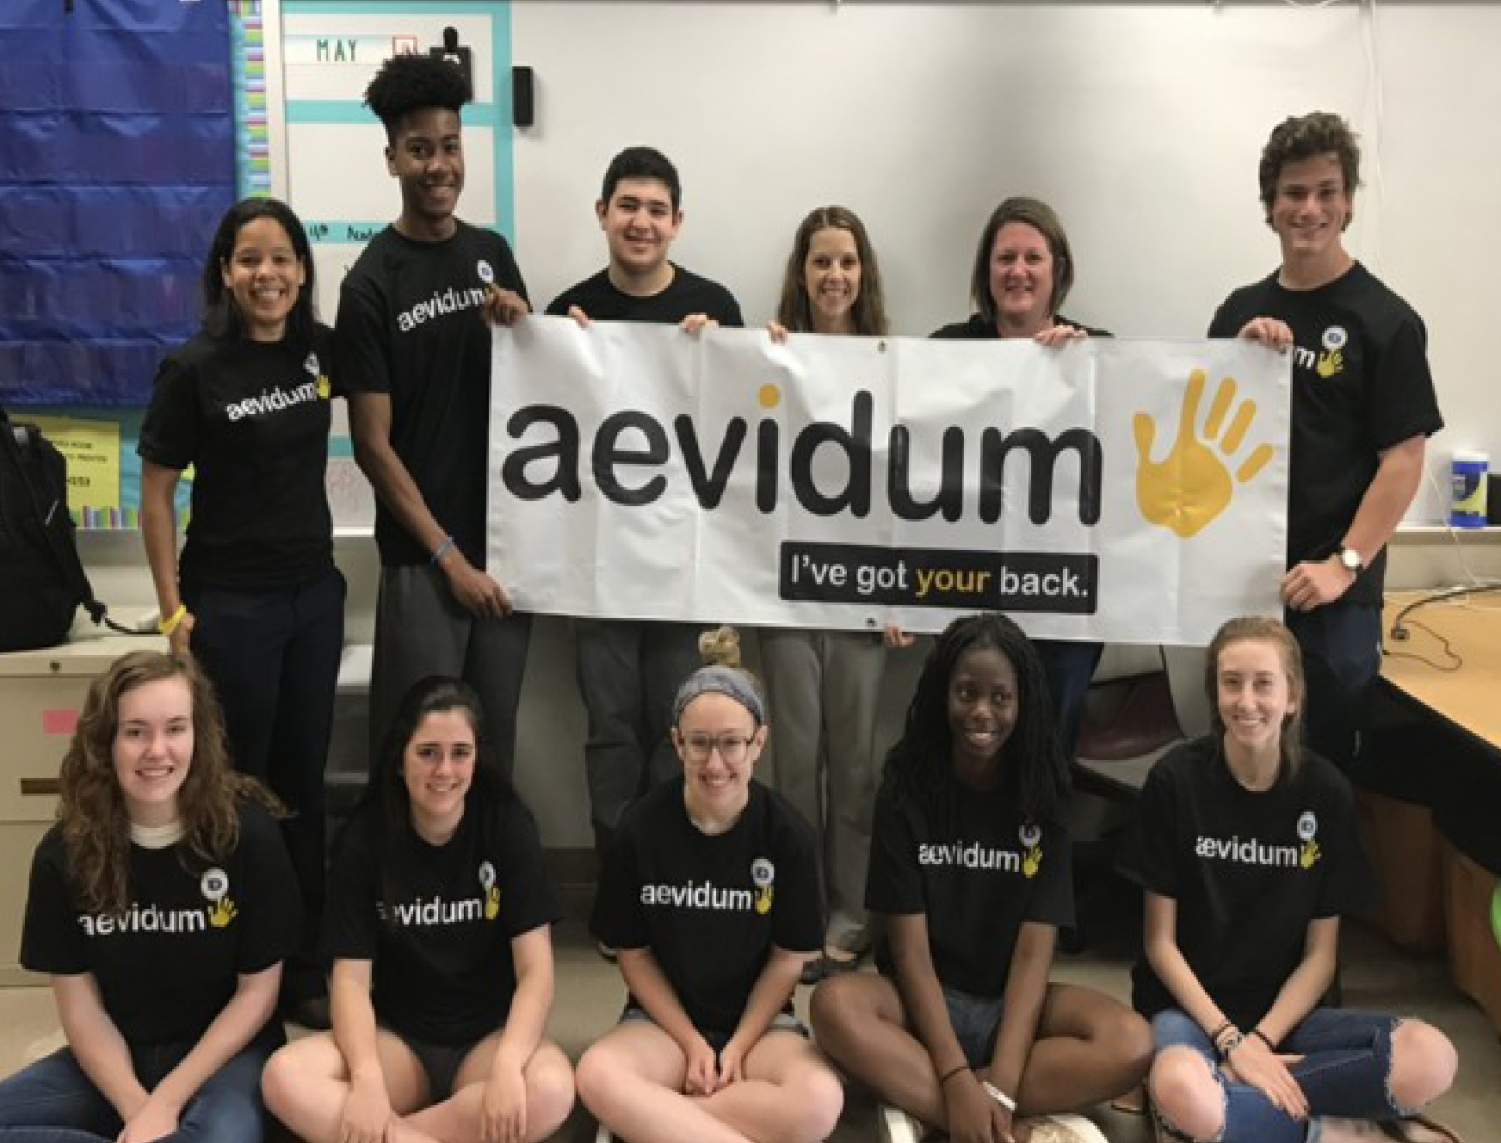 They've got our backs!  Aevidum students and advisers proudly display the club's logo and slogan at a May 2018 meeting.